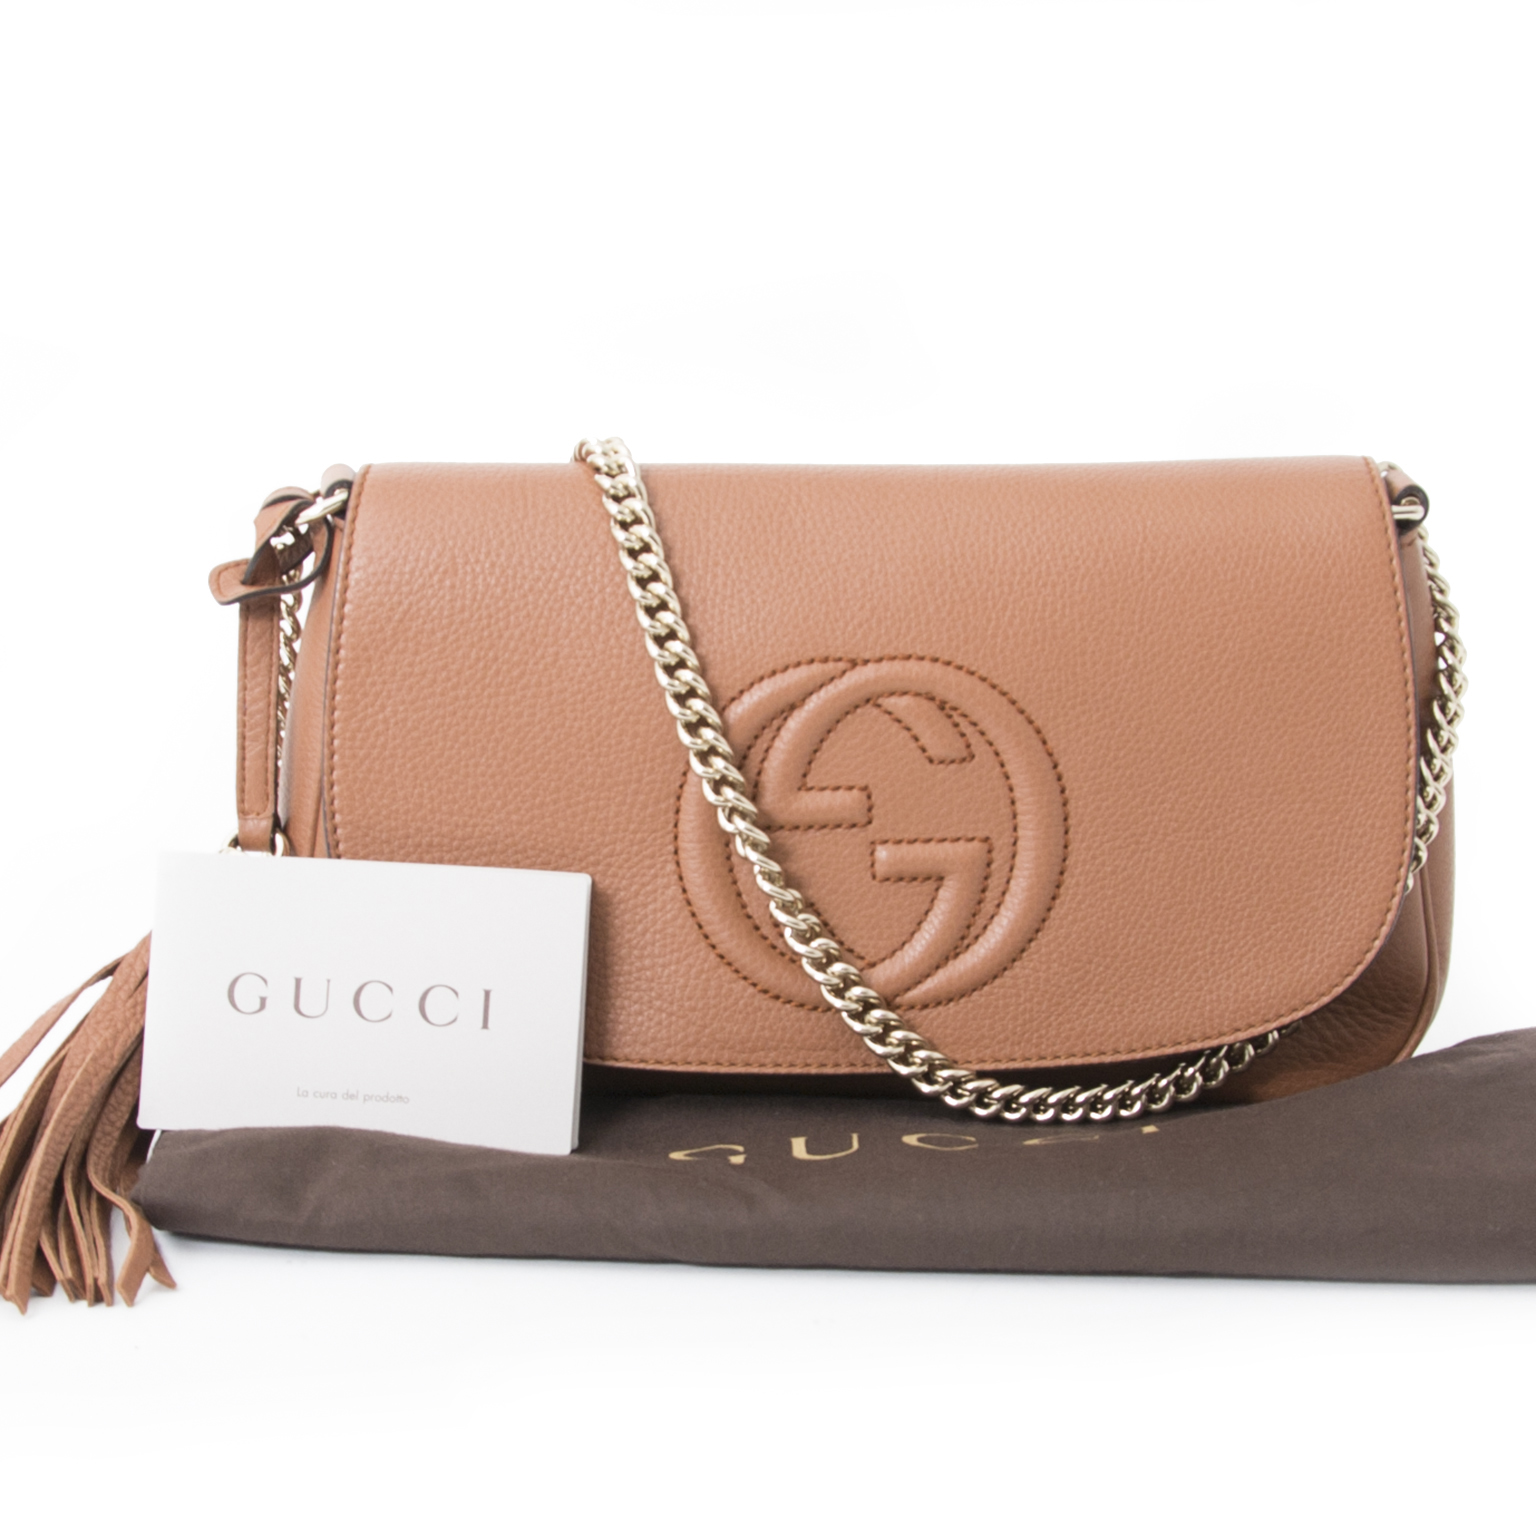 34695ceb96a Buy authentic Gucci Soho Cognac Shoulder Bag at the right price at LabelLOV  vintage webshop.